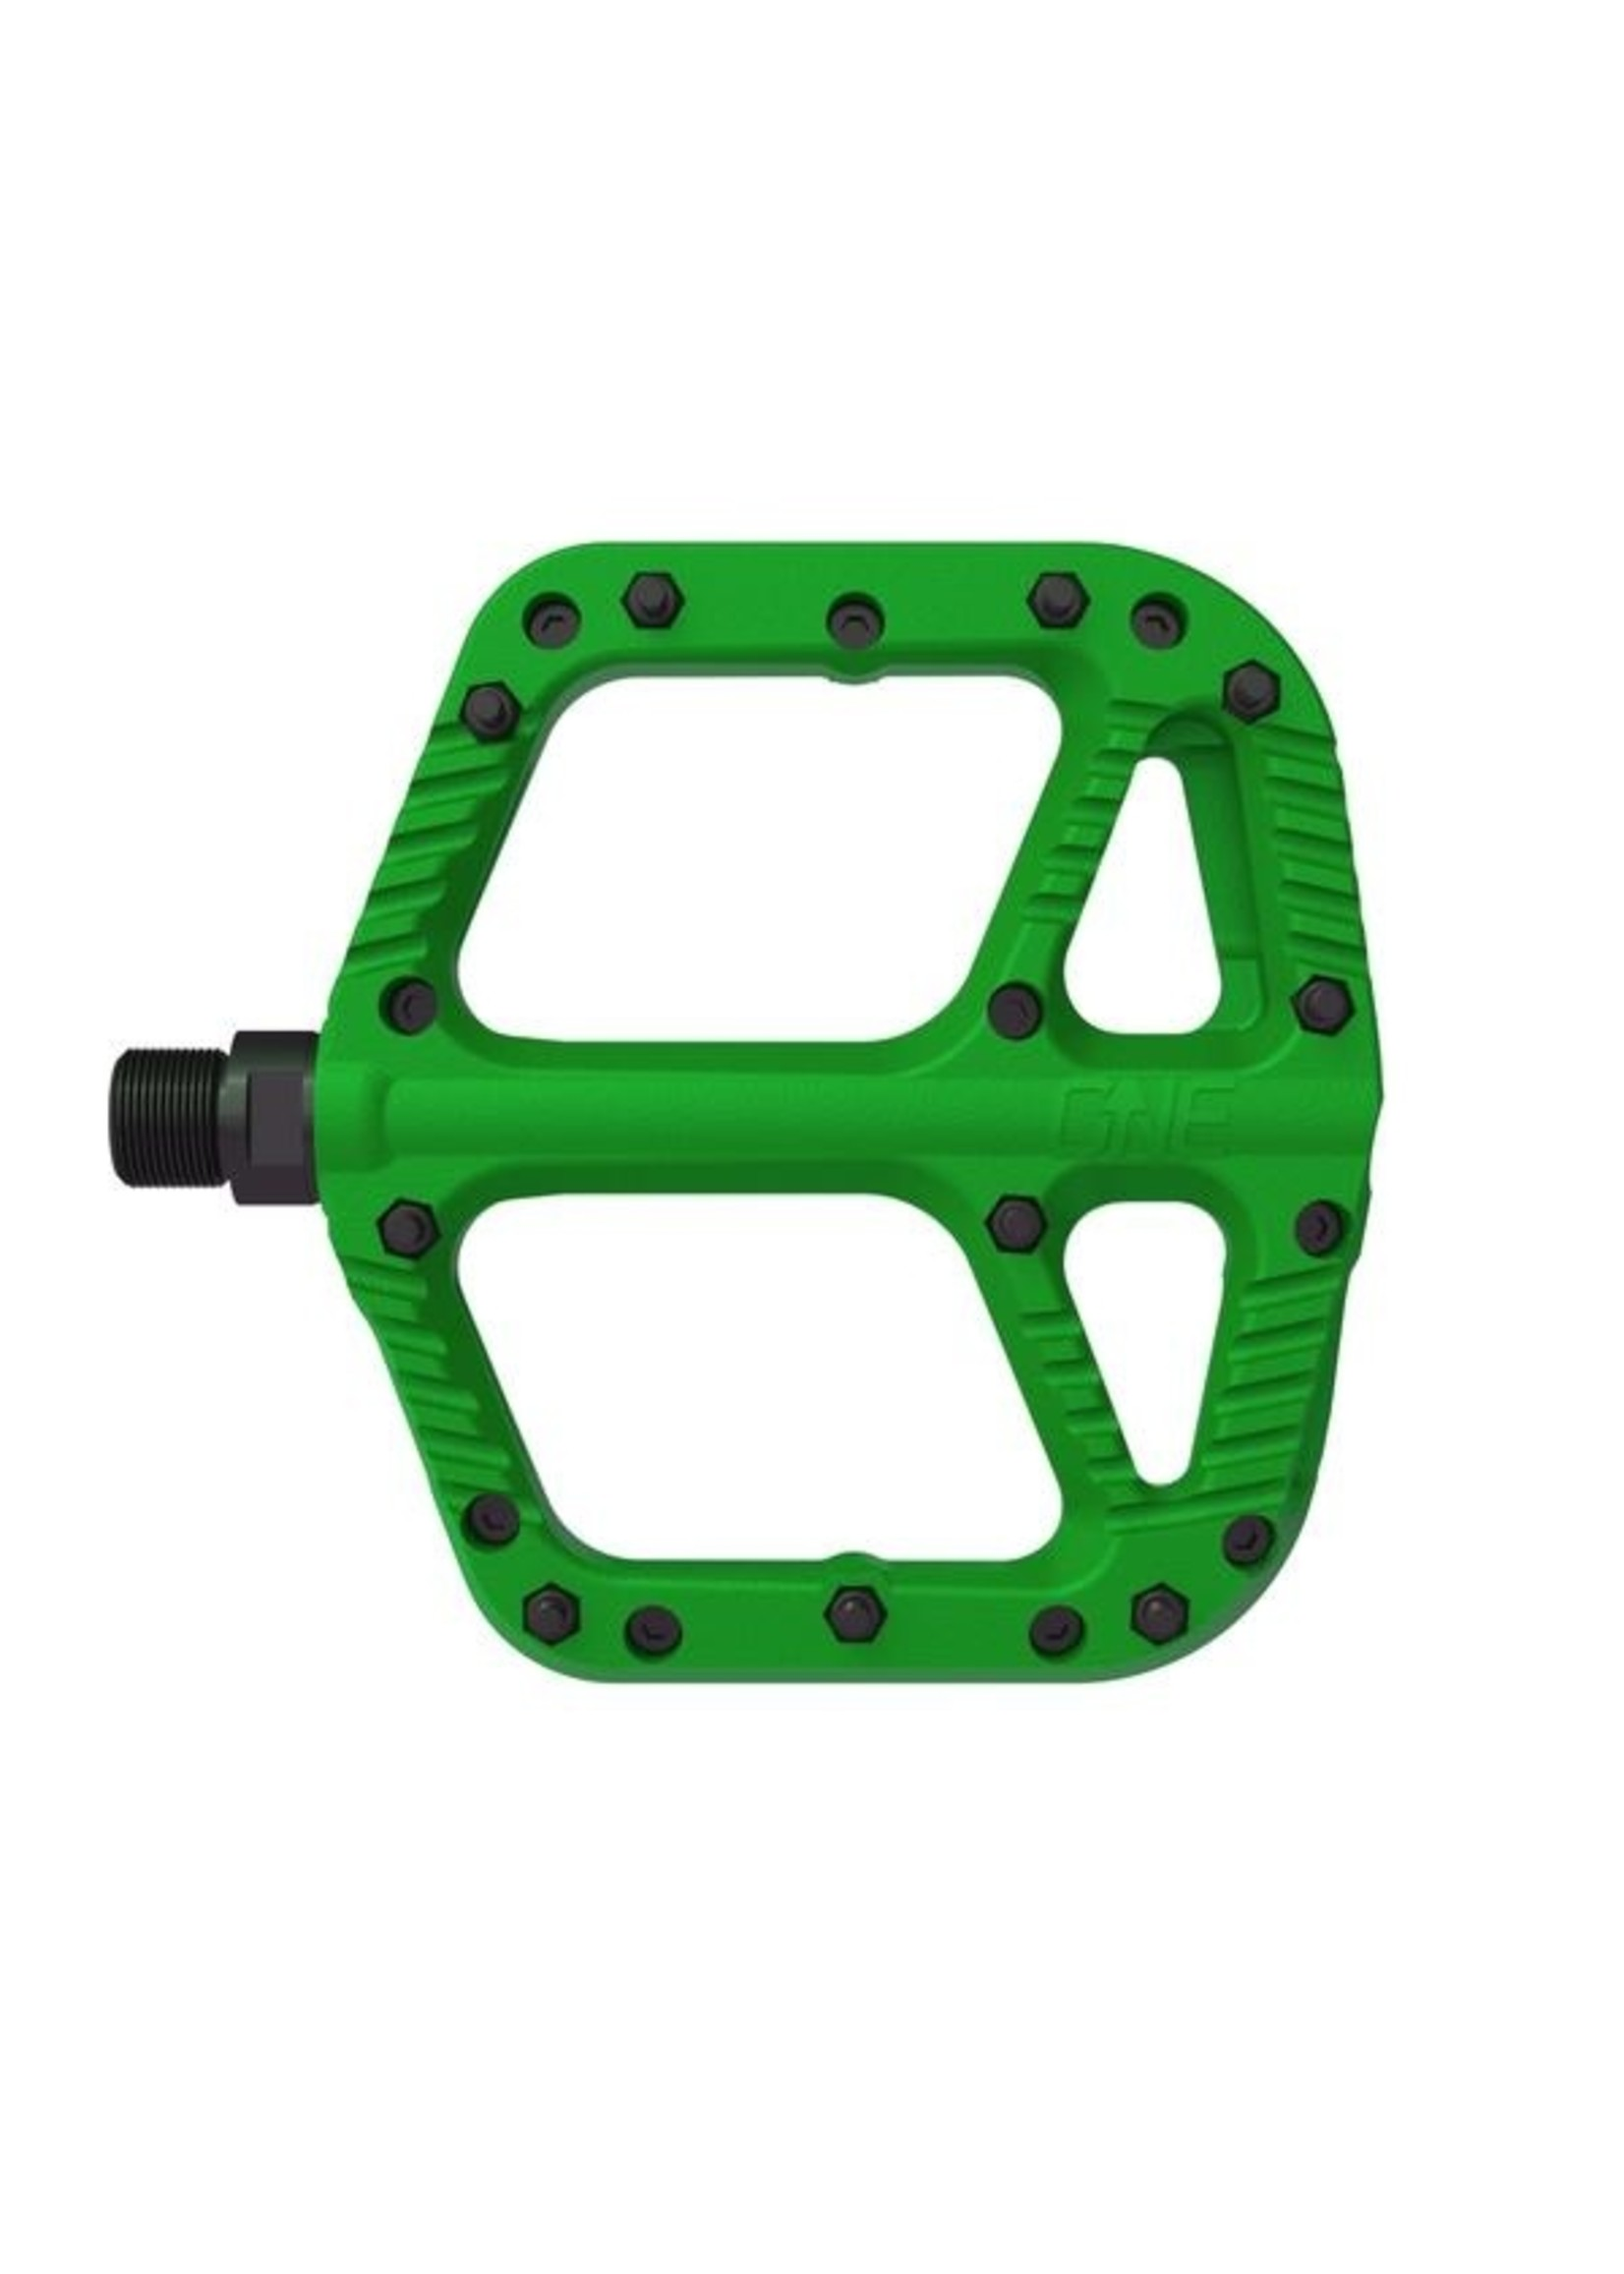 OneUp Components One Up- Composite Pedals